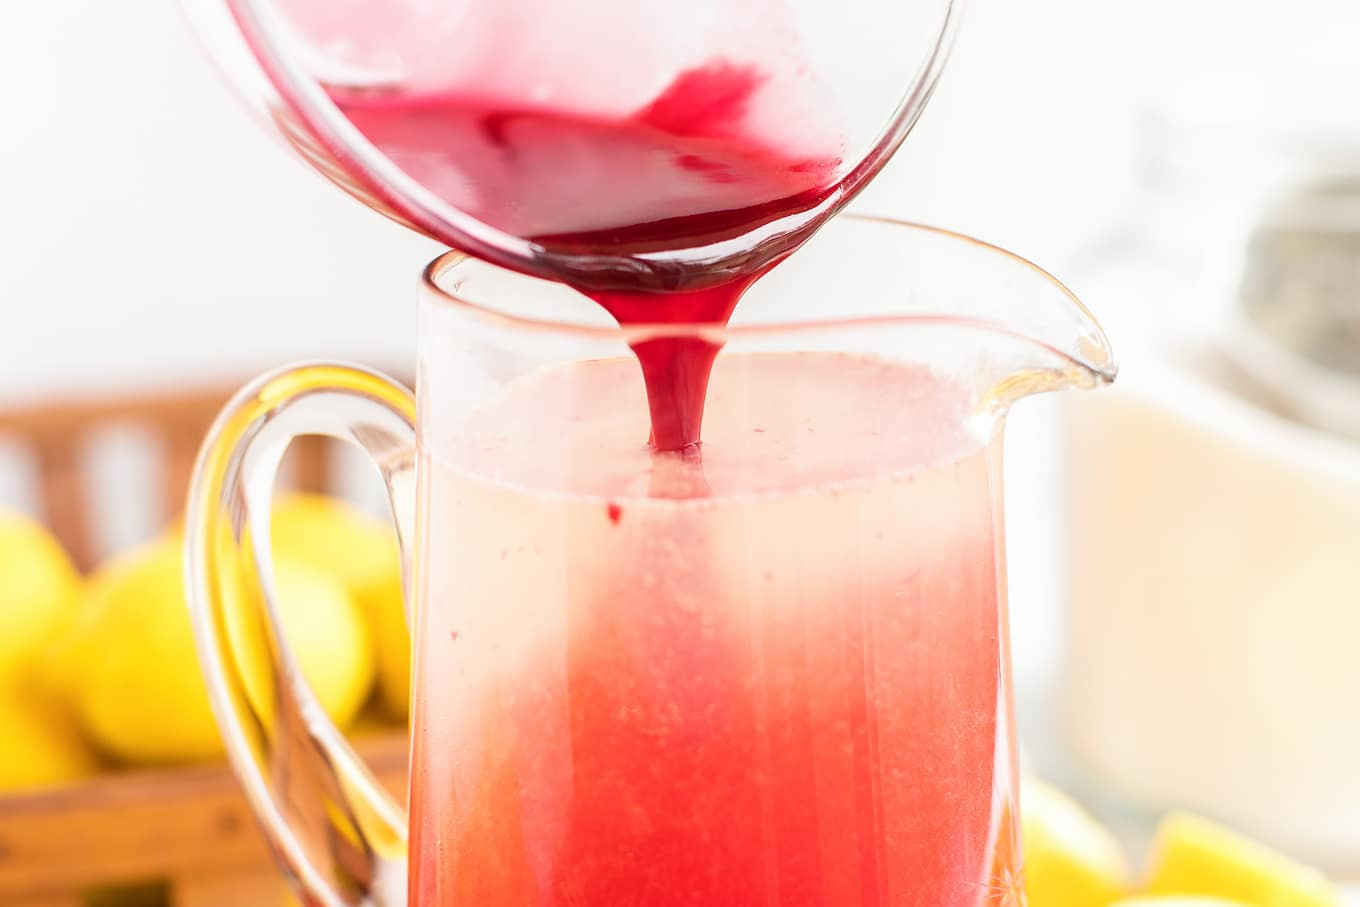 Raspberry Syrup and Homemade Lemonade